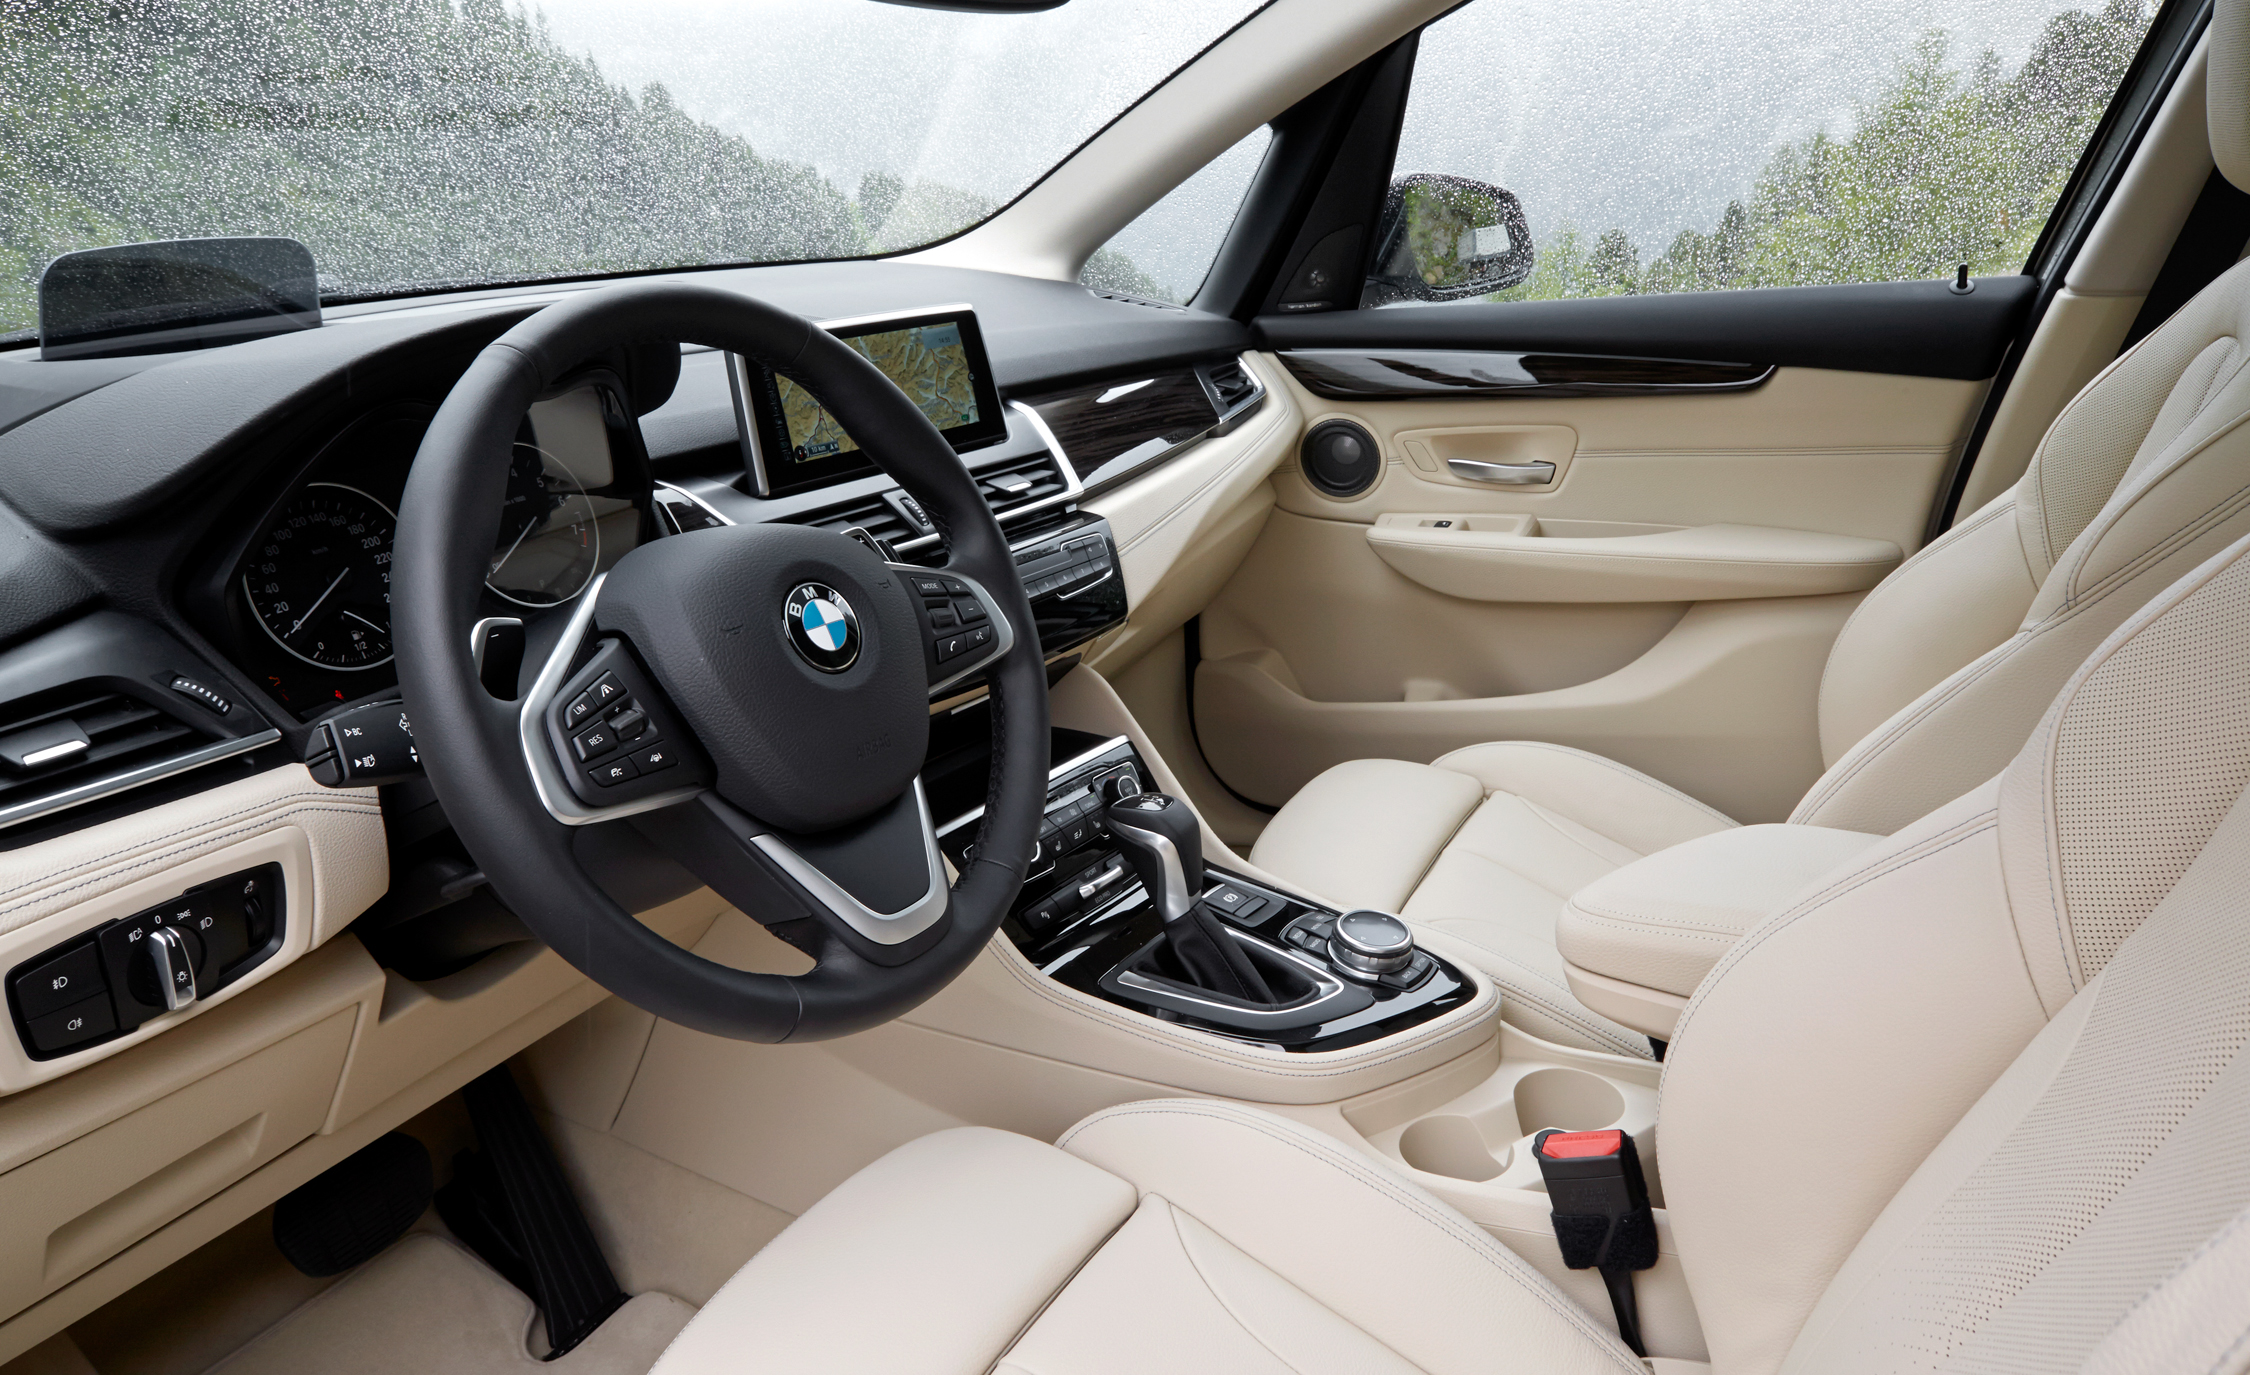 2015 BMW 225i Active Tourer (Euro Spec) Interior (Photo 12 of 14)